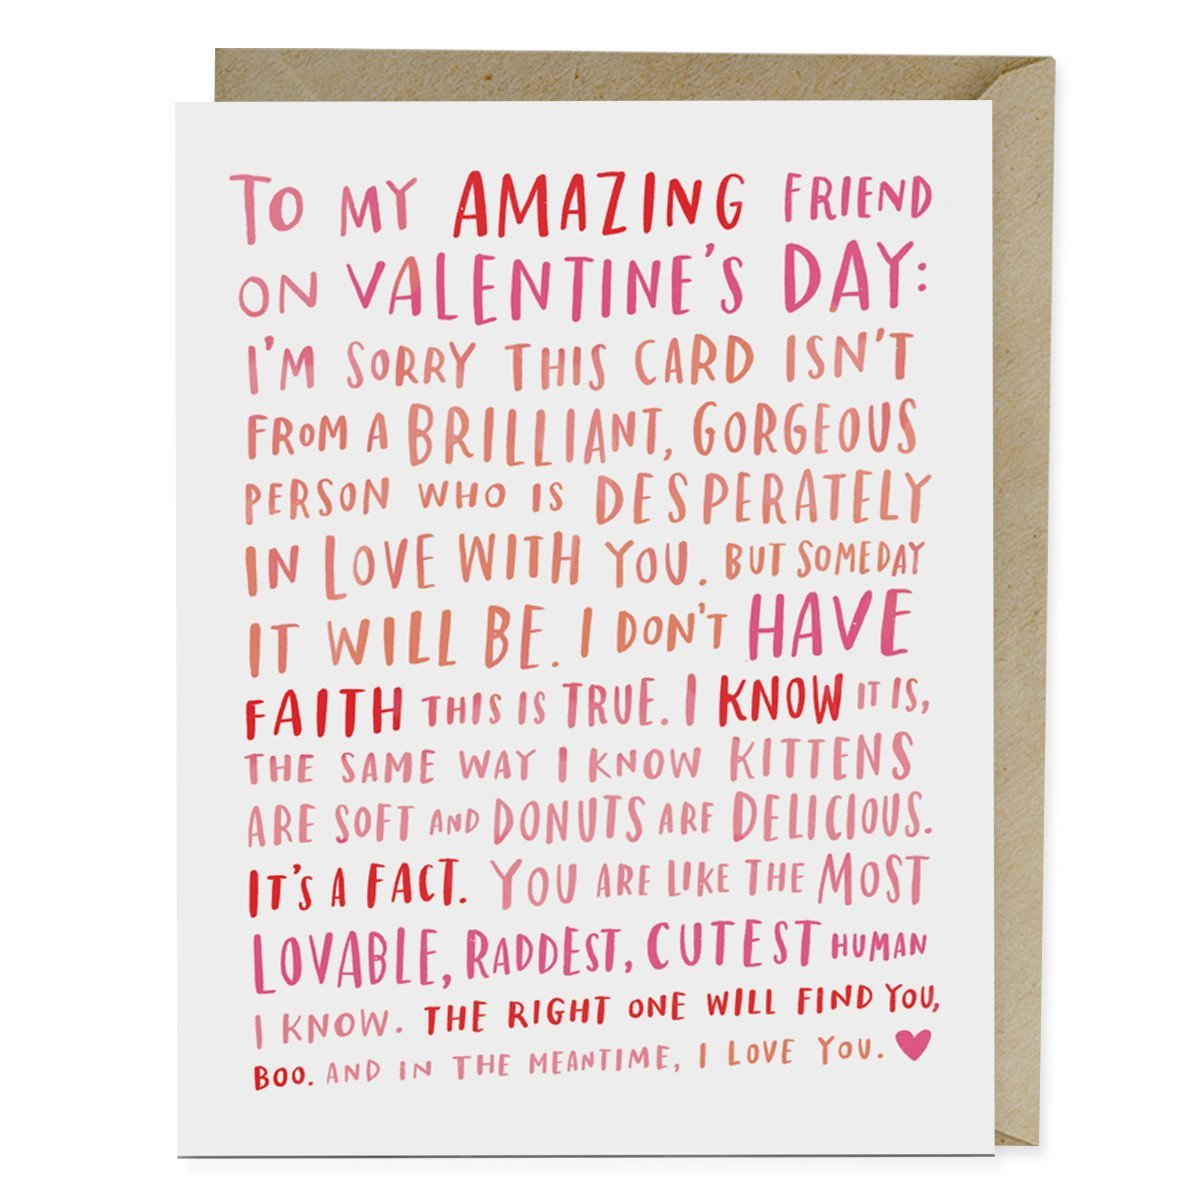 Friend Valentines Quotes: To My Amazing Single Friend Valentine's Day Card